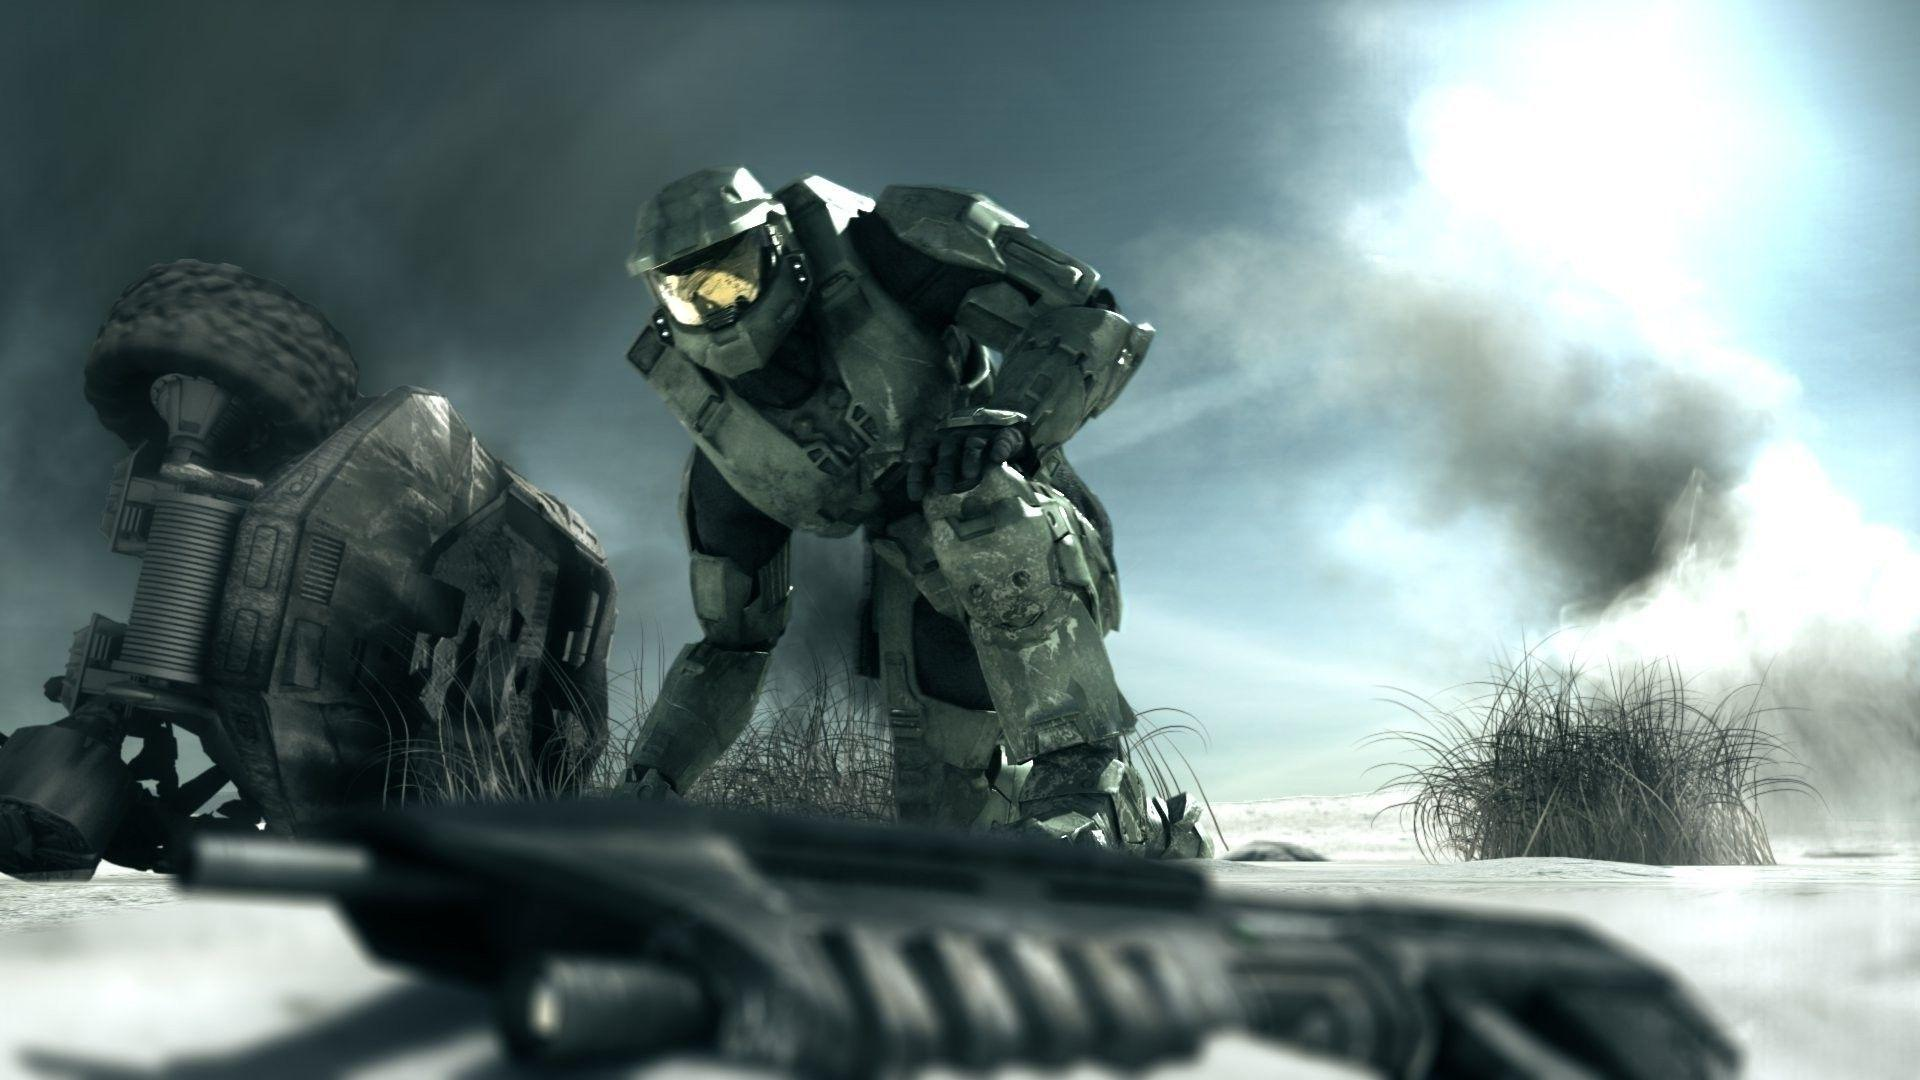 Halo 3 Master Chief Wallpapers - Wallpaper Cave